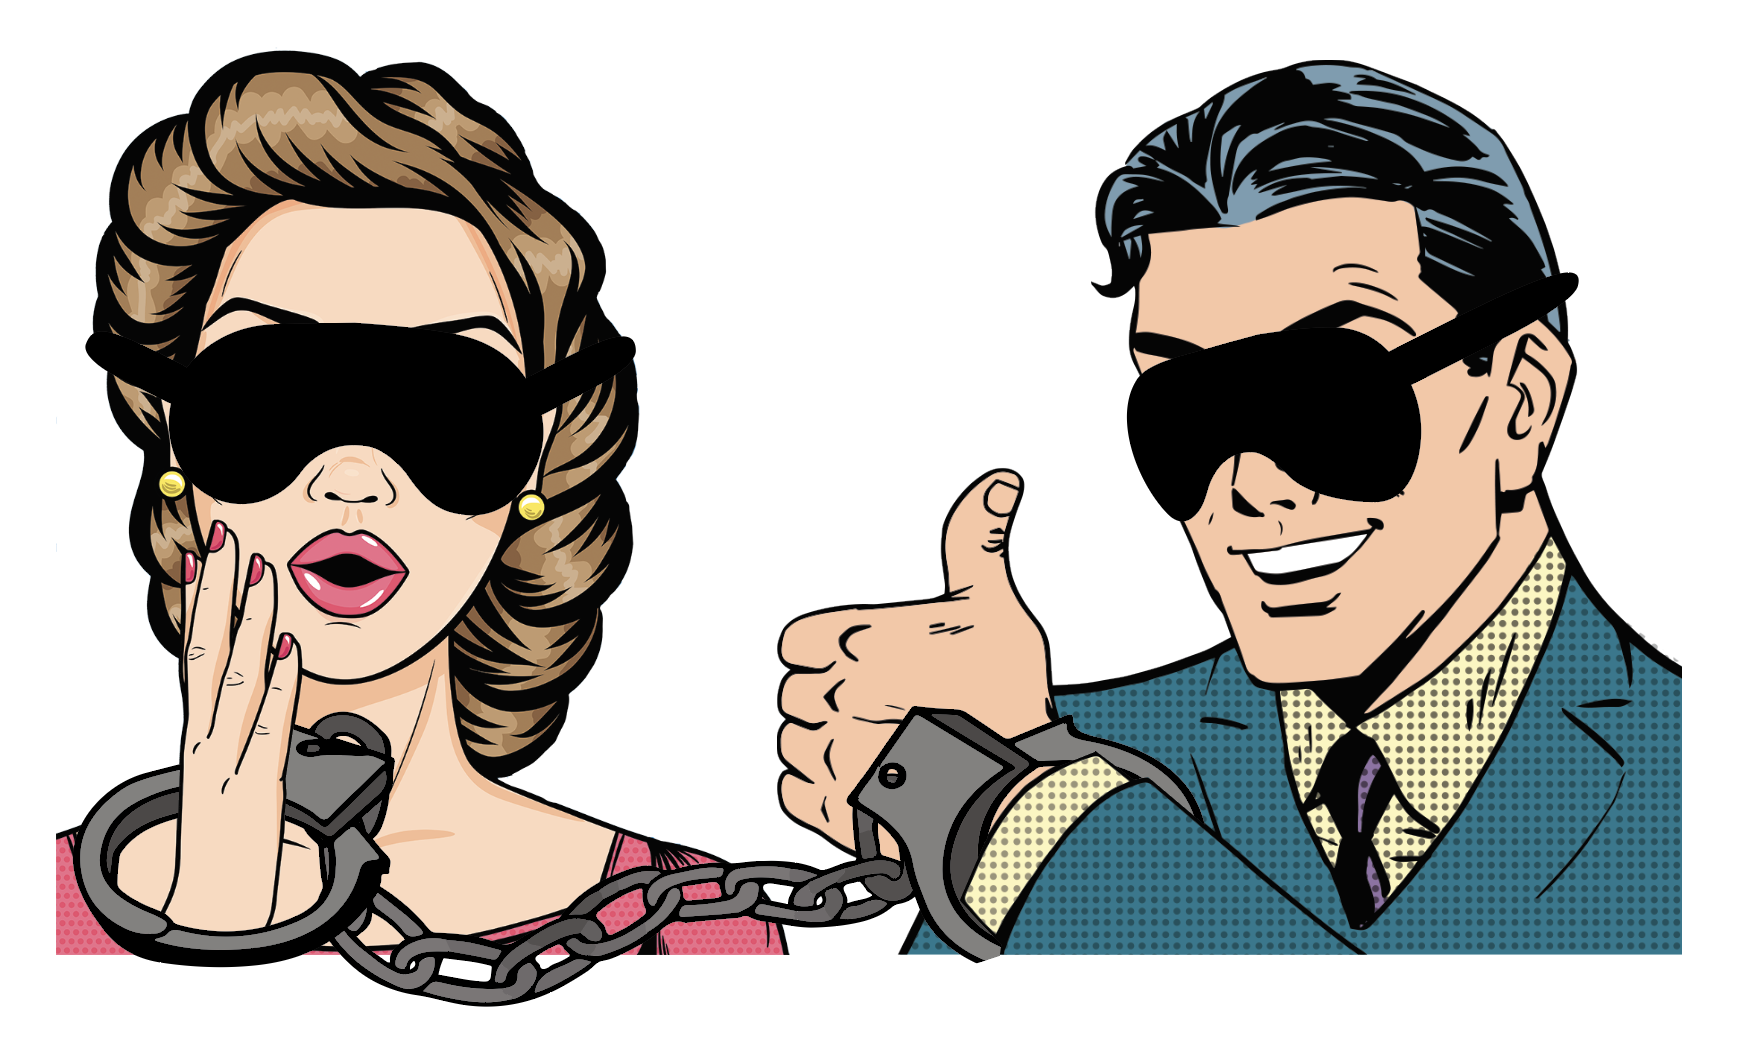 Dick and Jane blindfolded